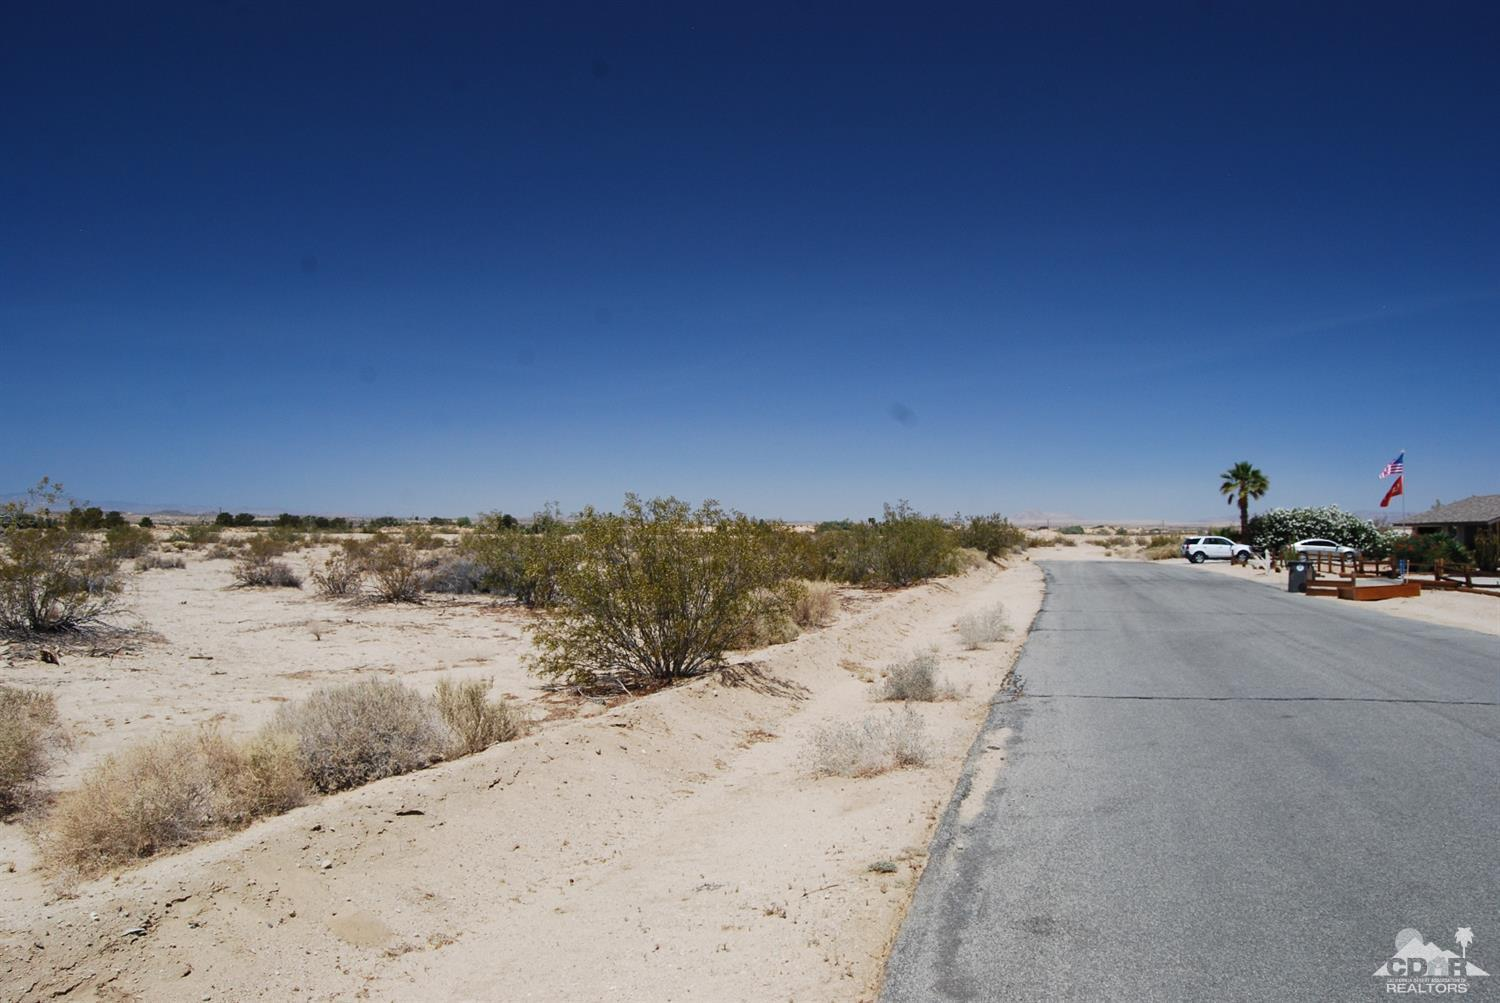 T Anchor - Lot 30 29 Palms, CA  | MLS# 218015220 | Welcome